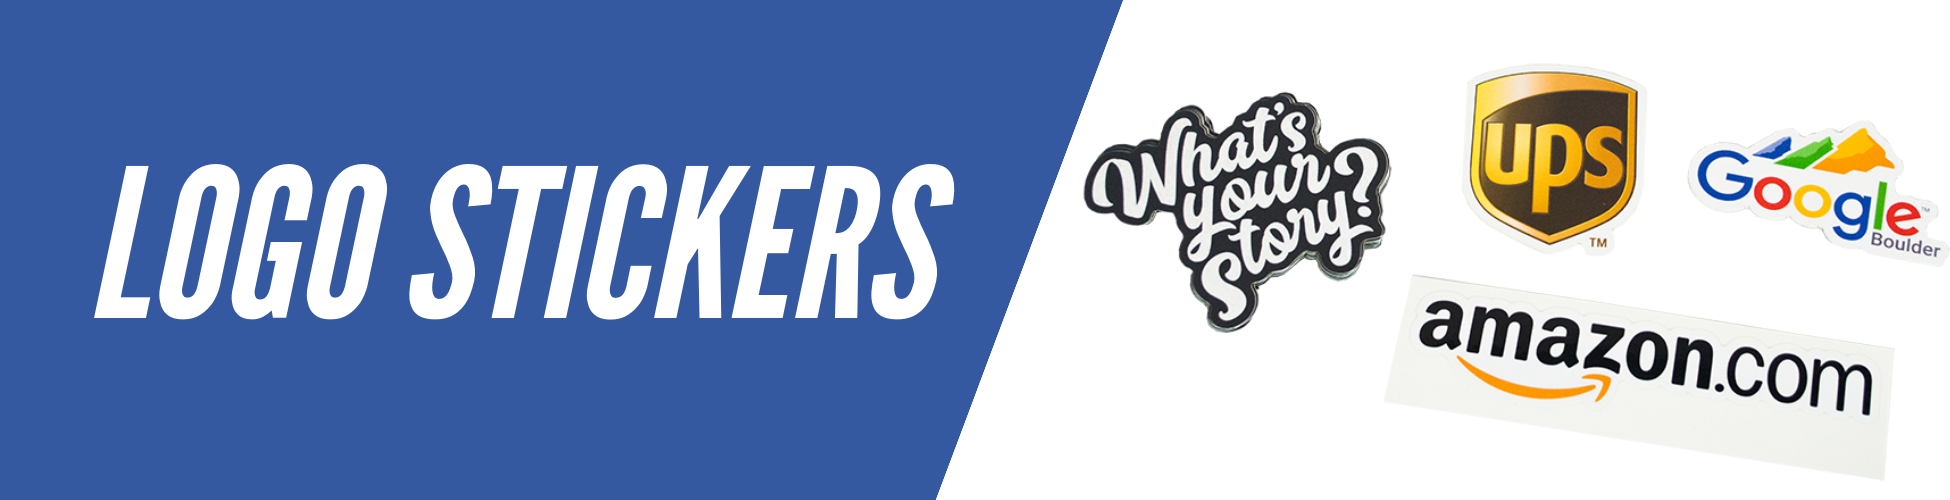 logo-stickers-banner.png